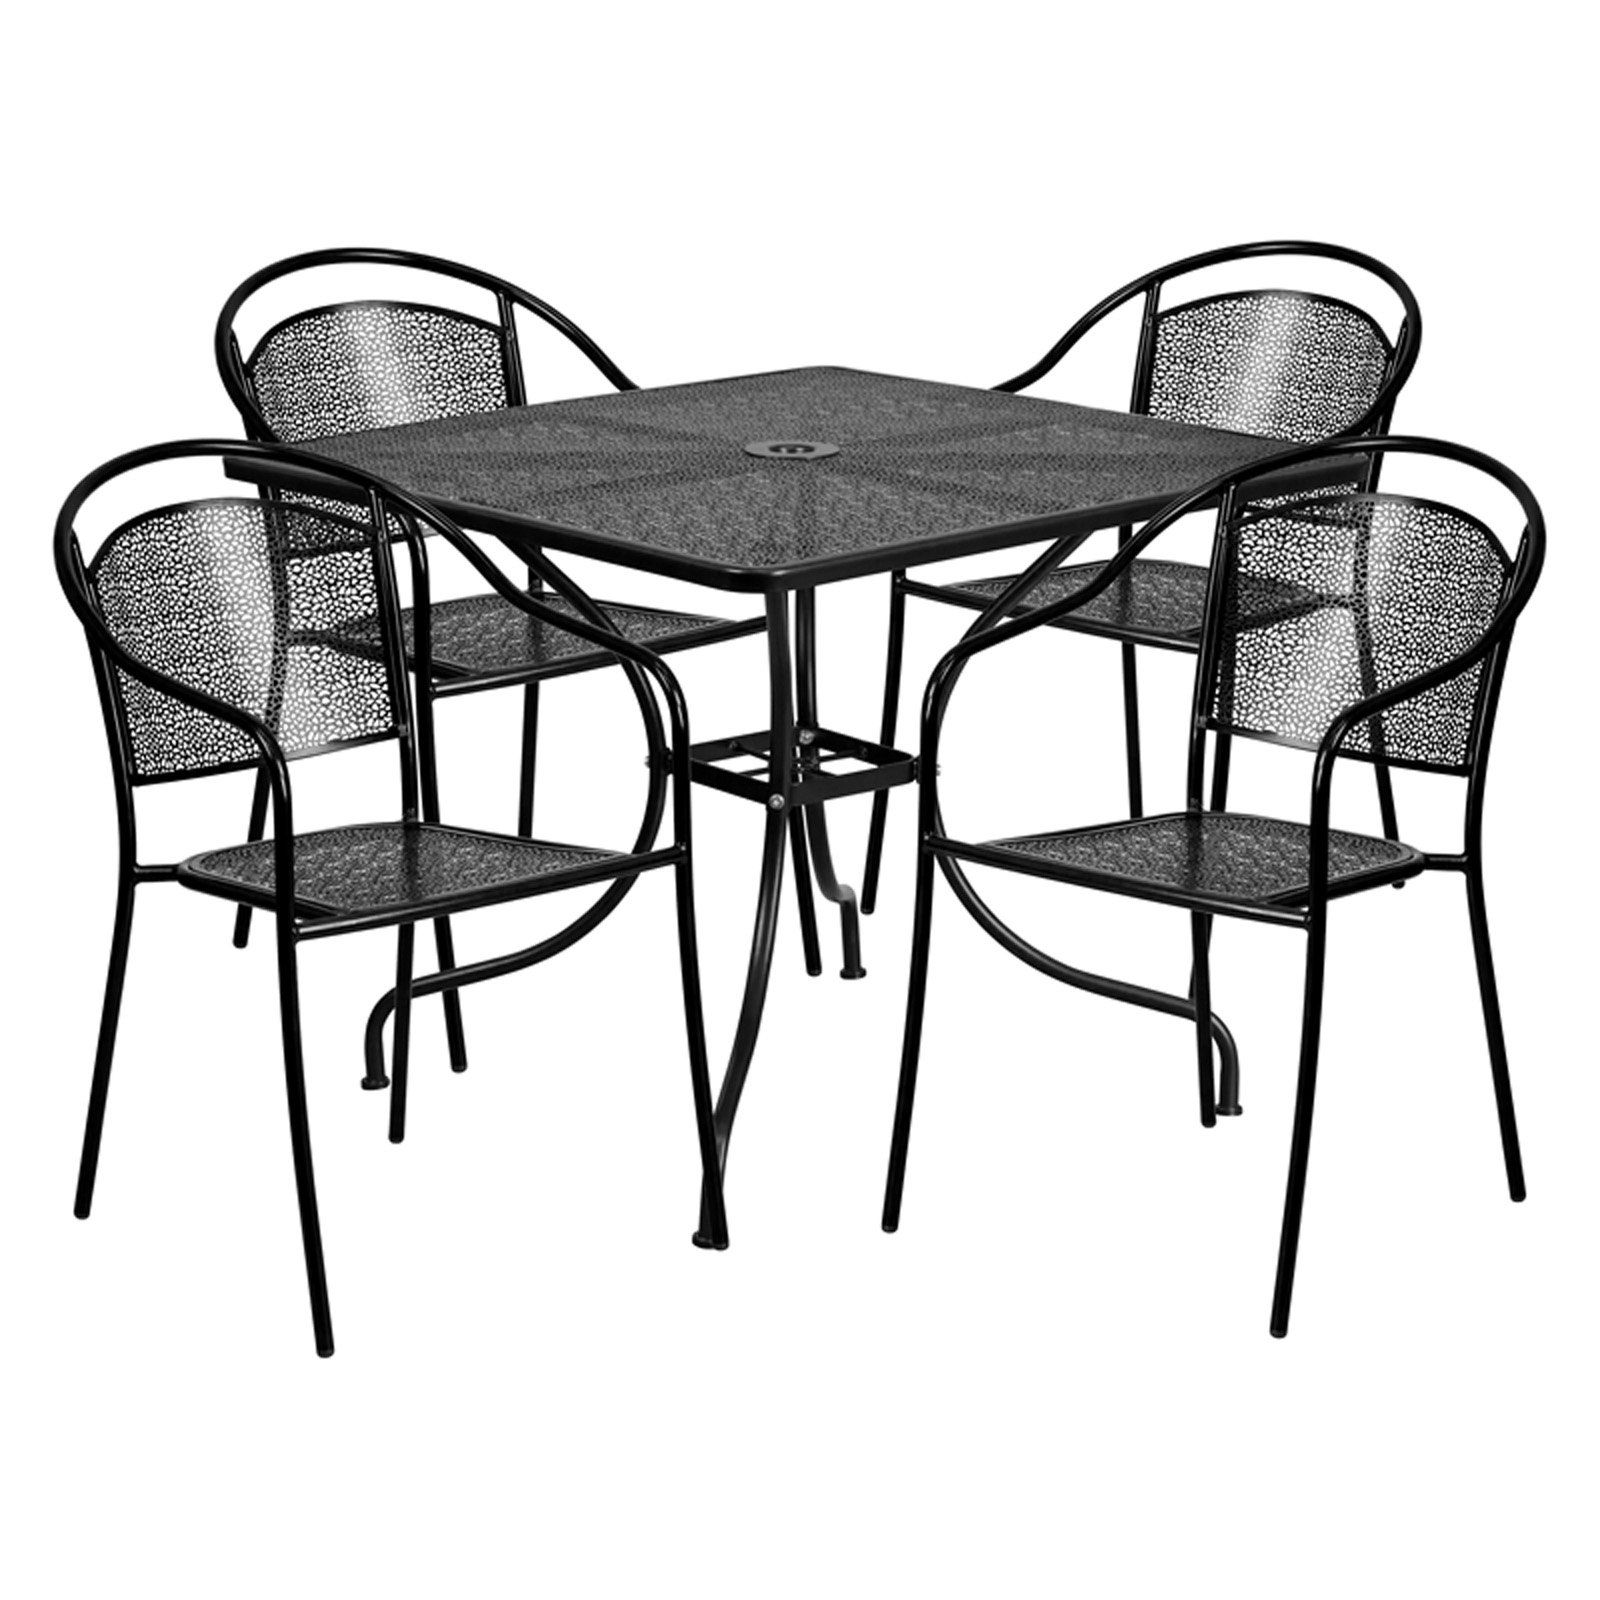 Outdoor Flash Furniture Steel Square Patio Dining Set With 4 Round